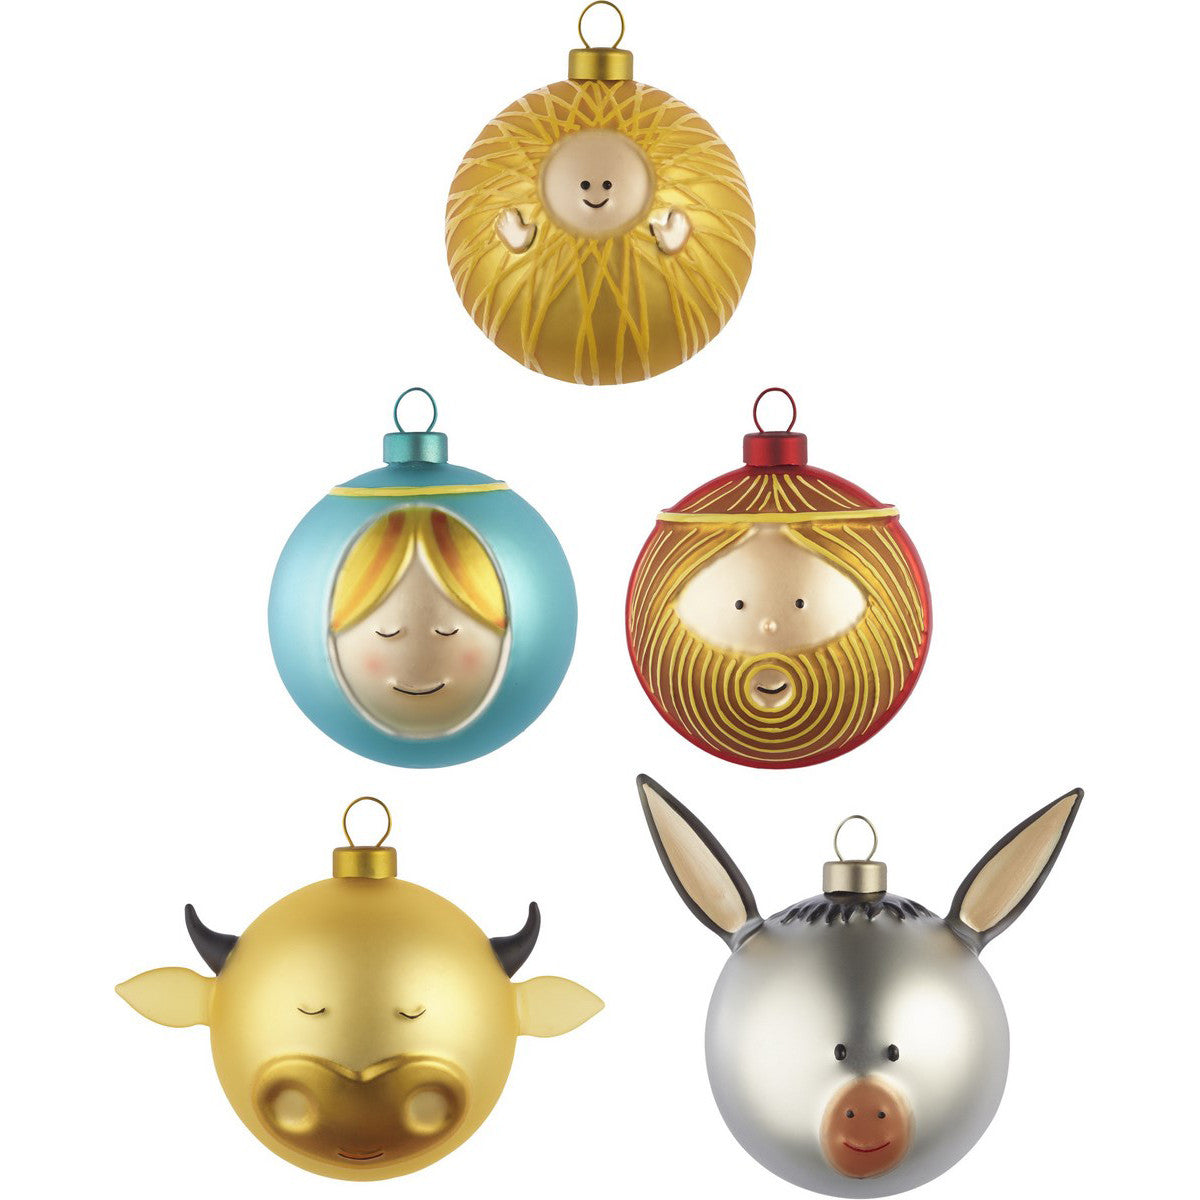 le palle presepe small christmas ornaments by alessi set of 5 - Small Christmas Ornaments